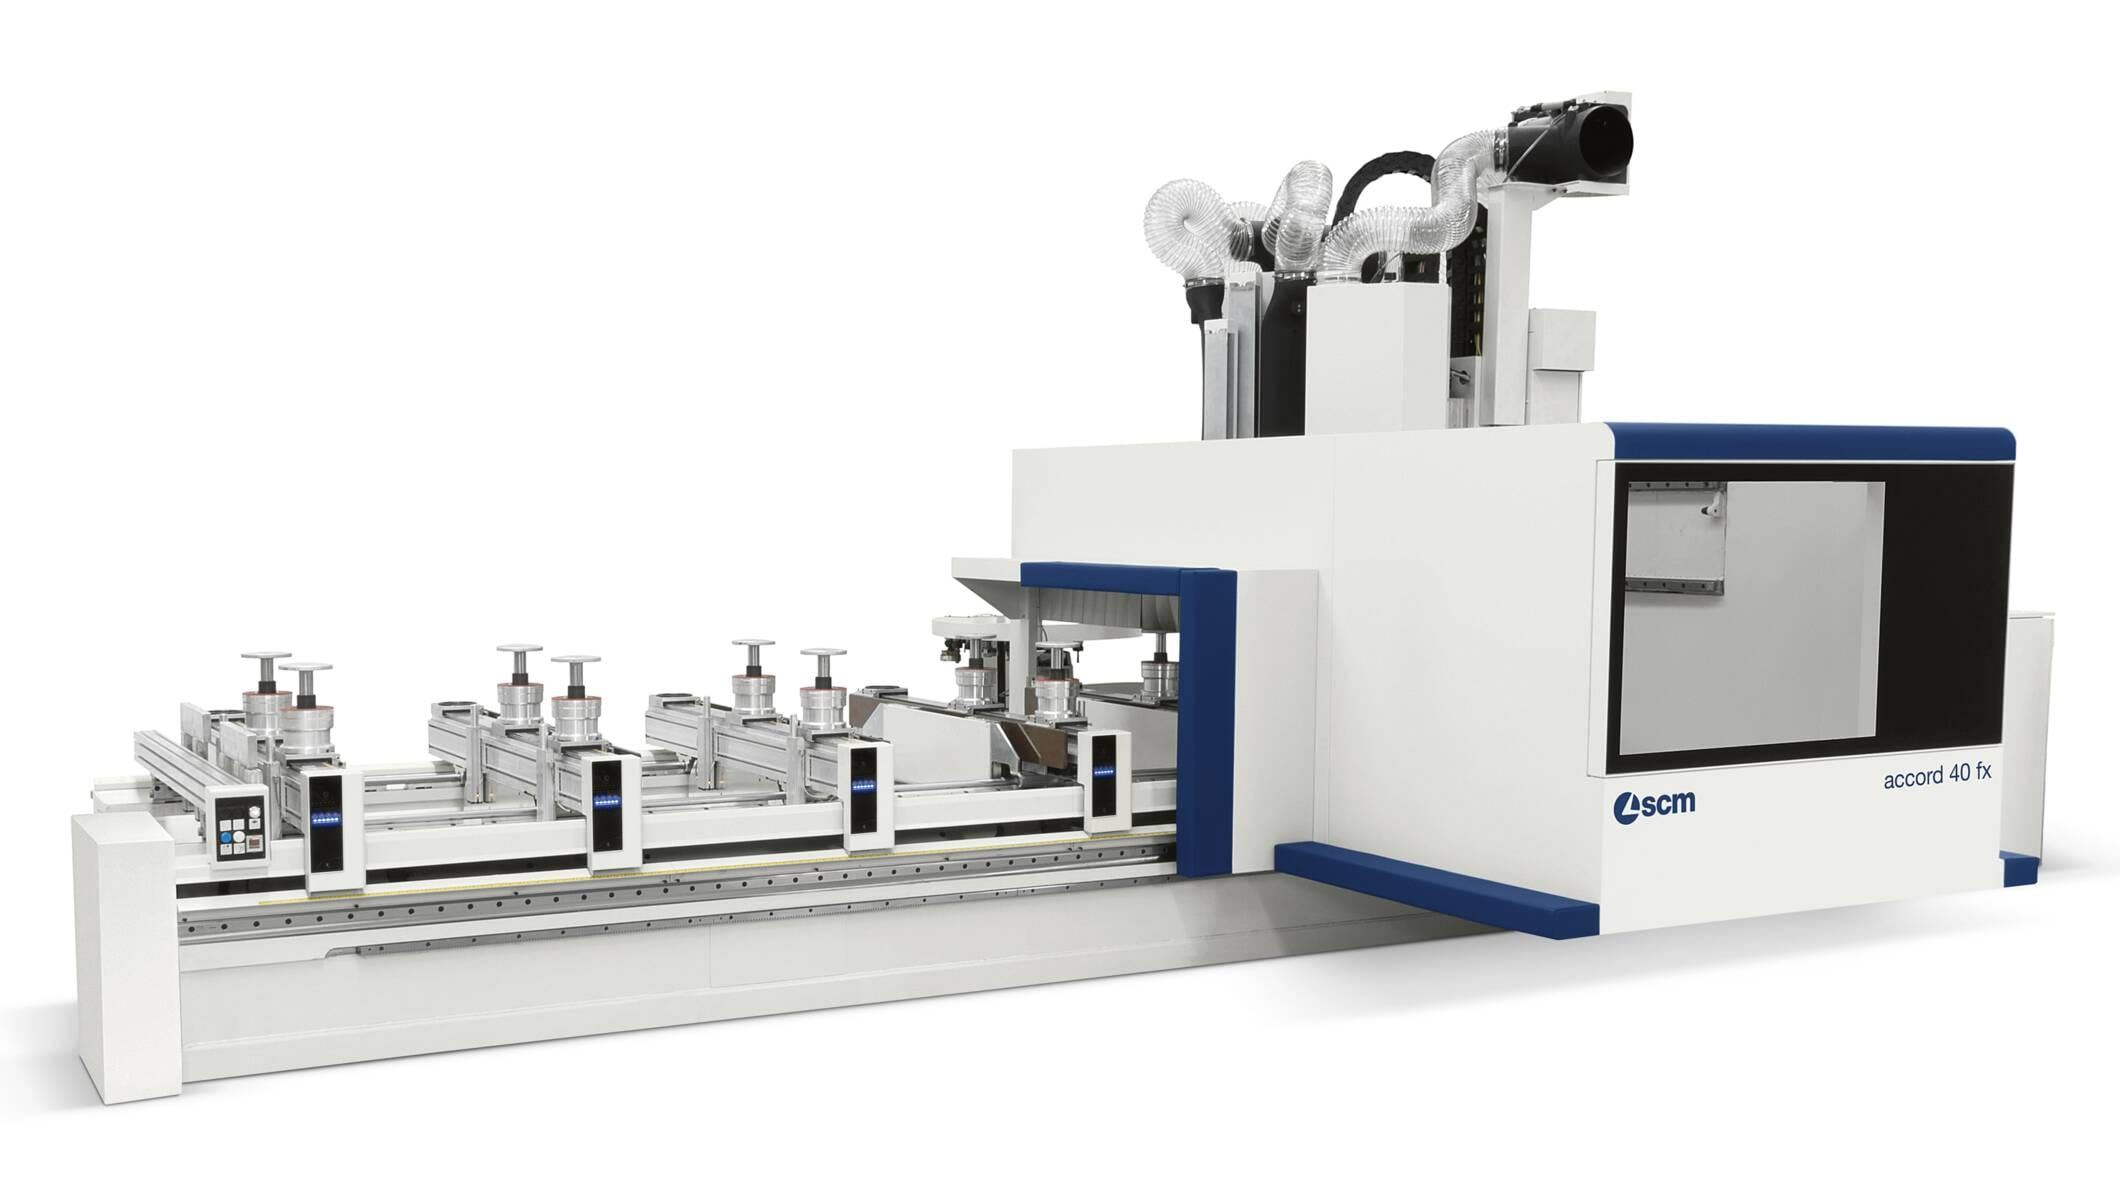 CNC Machining Centres - CNC Machining Centres for solid wood routing and drilling - accord 40 fx